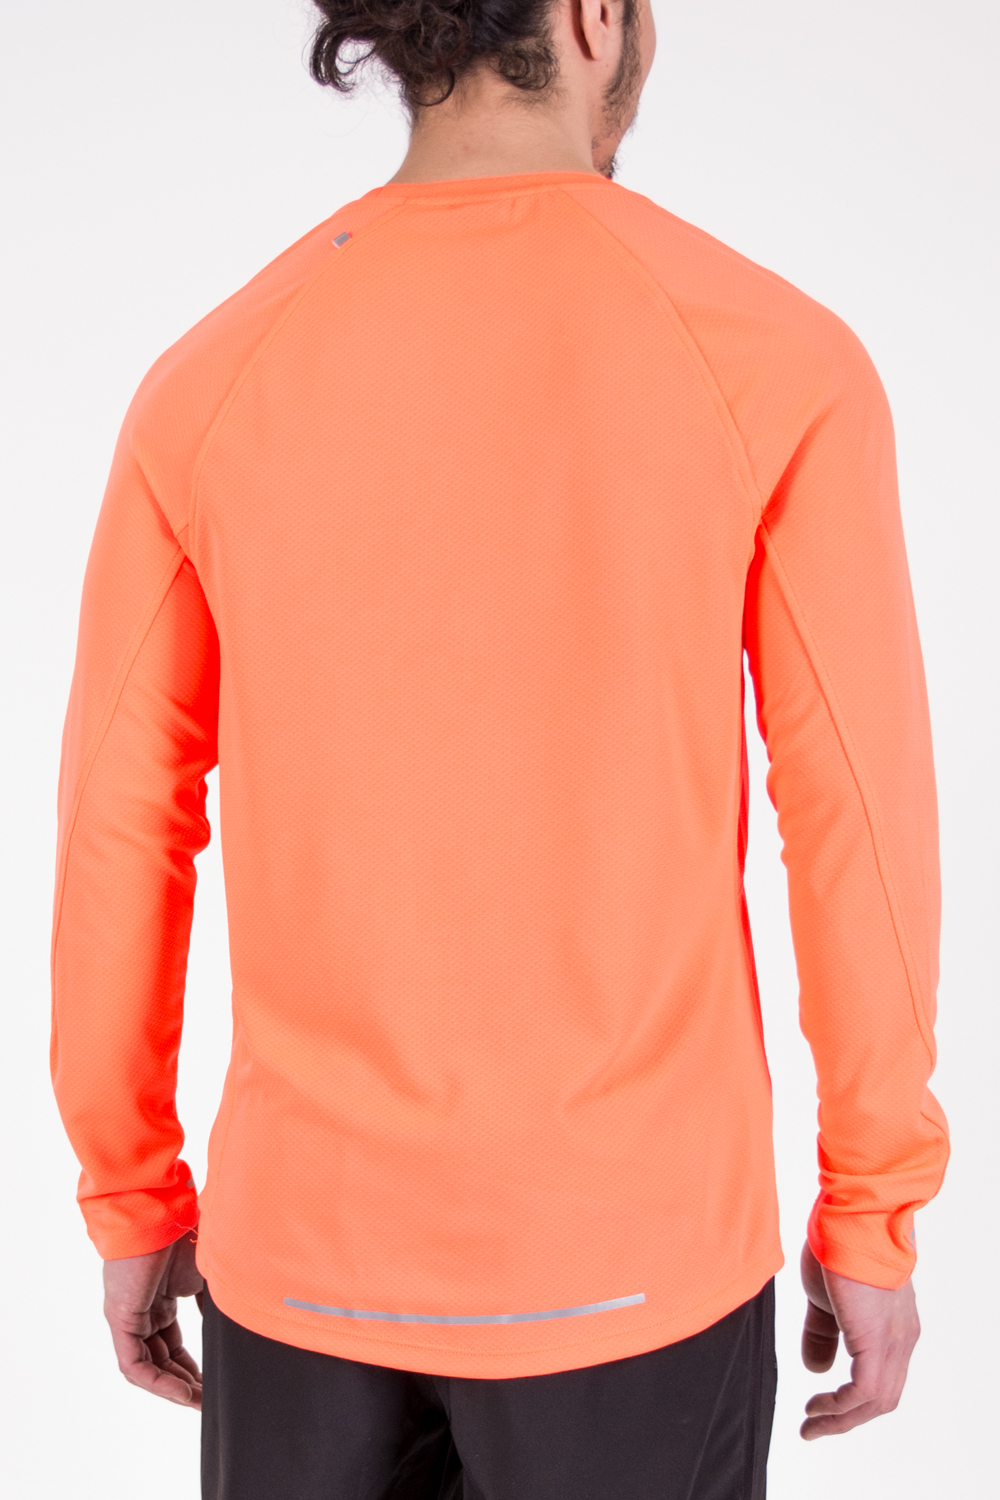 SUr-SP17-7XAJ956-Coral-back.jpg